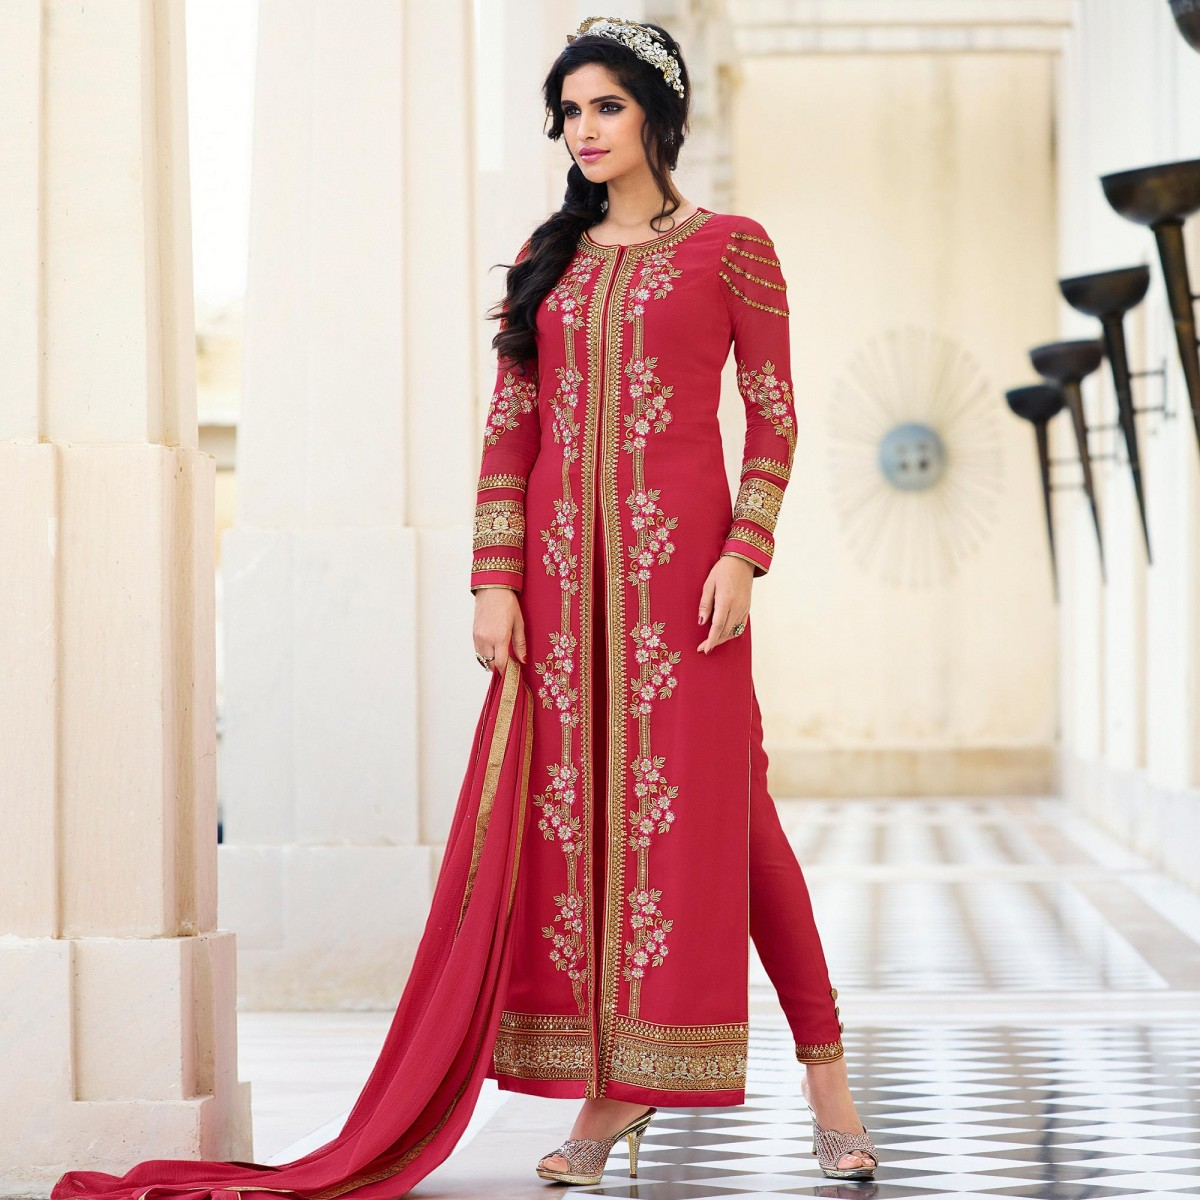 The model is wearing Red High Neck Churidar Suit.